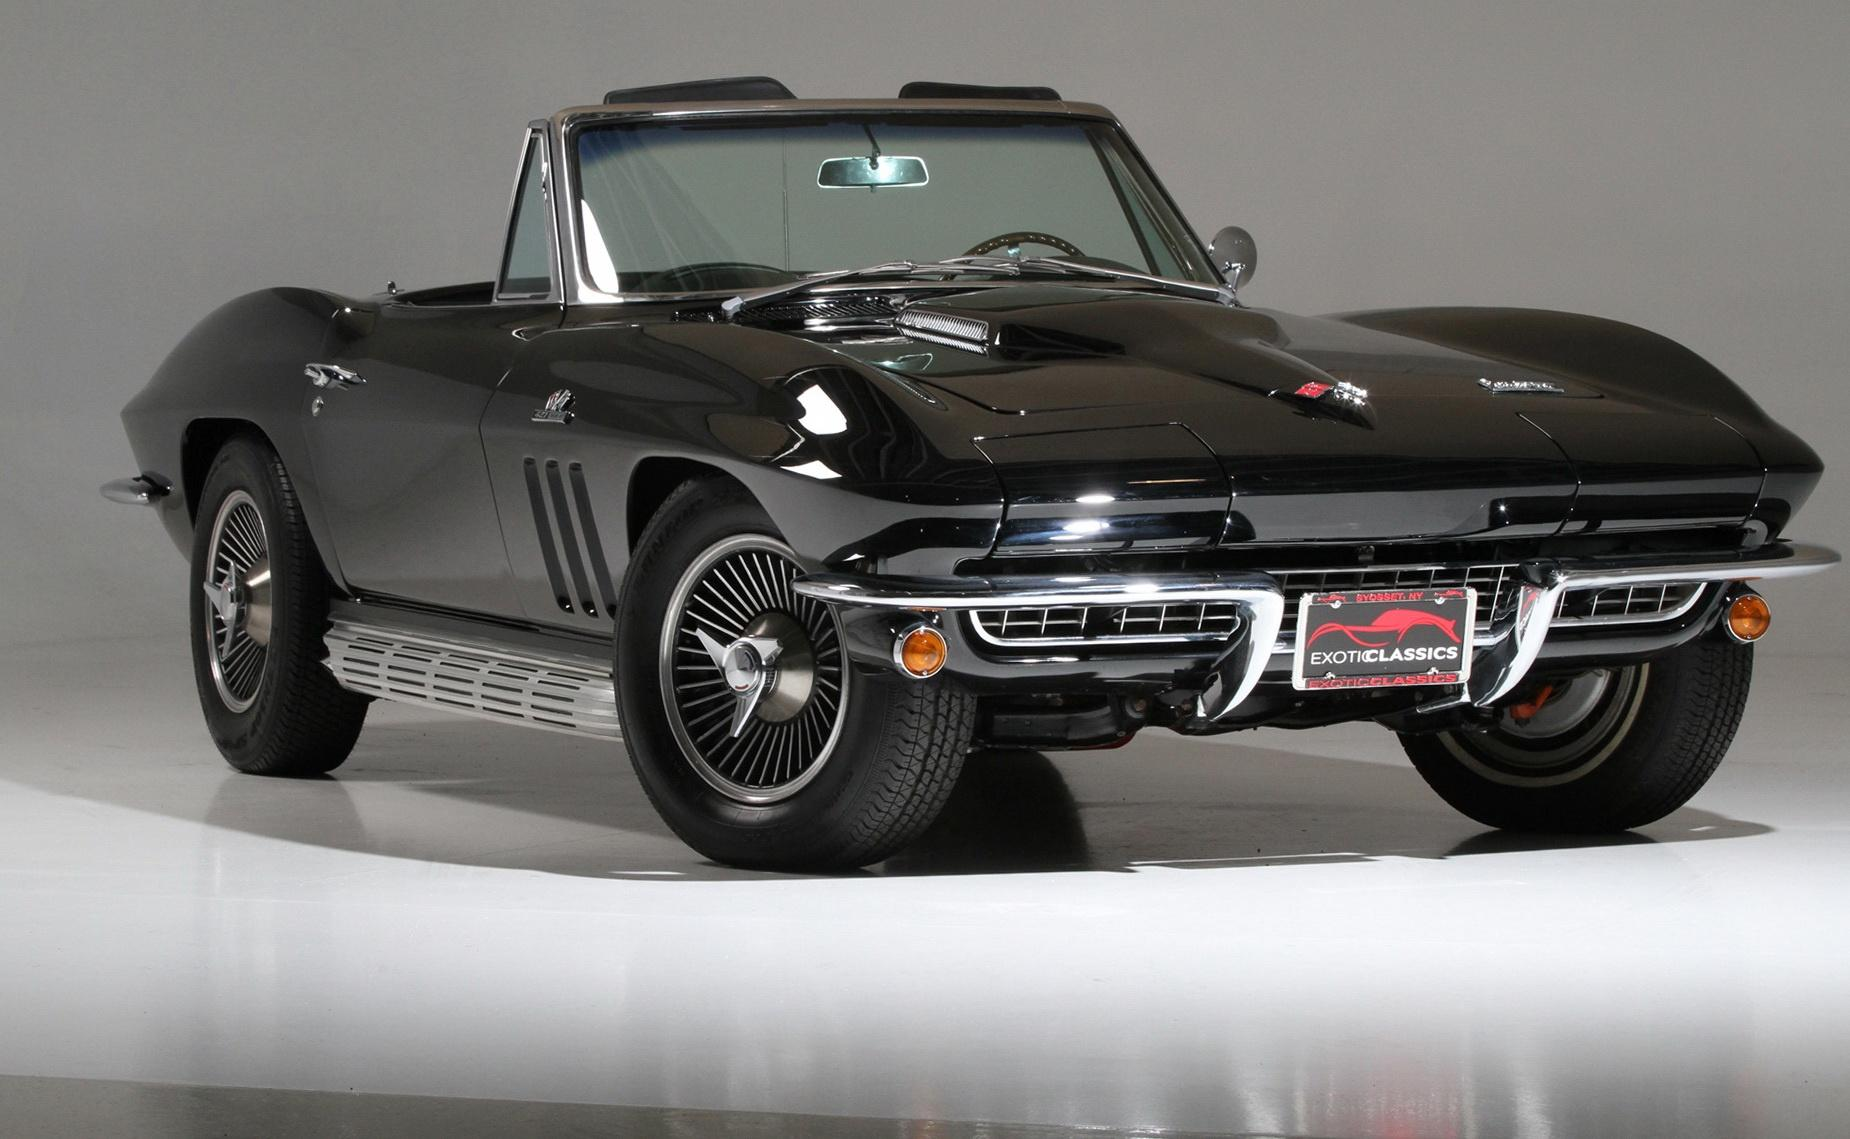 Elegant 1966 Chevrolet Corvette Convertible 427  Exotic And Classic Car